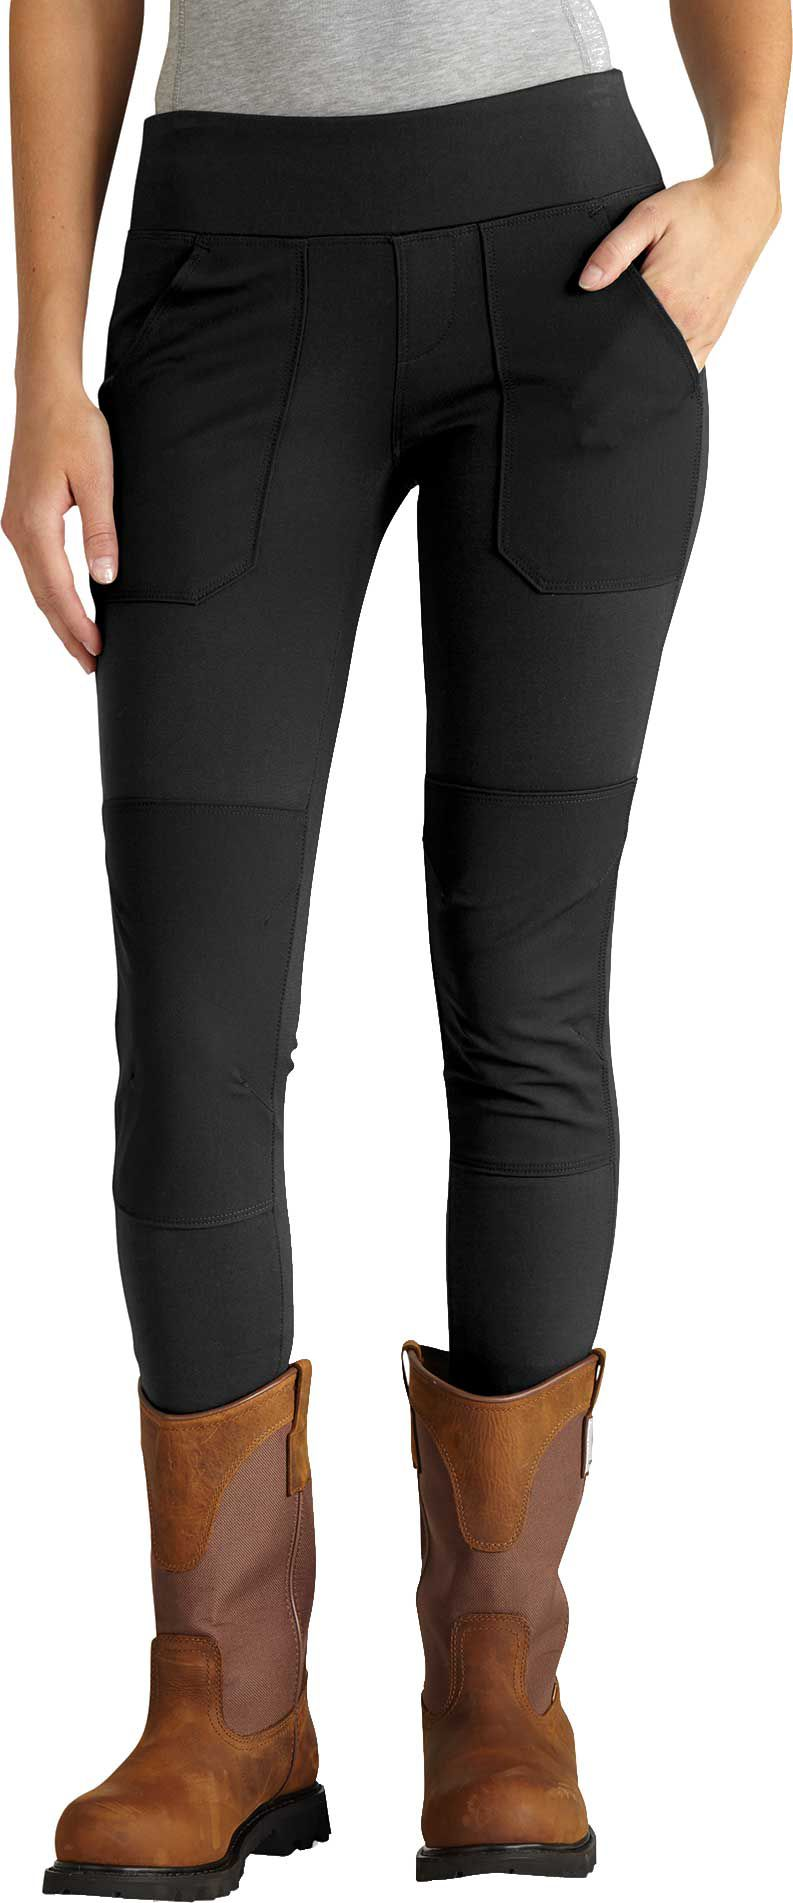 Carhartt Women's Force Utility Knit Leggings, Size: XS, Black thumbnail